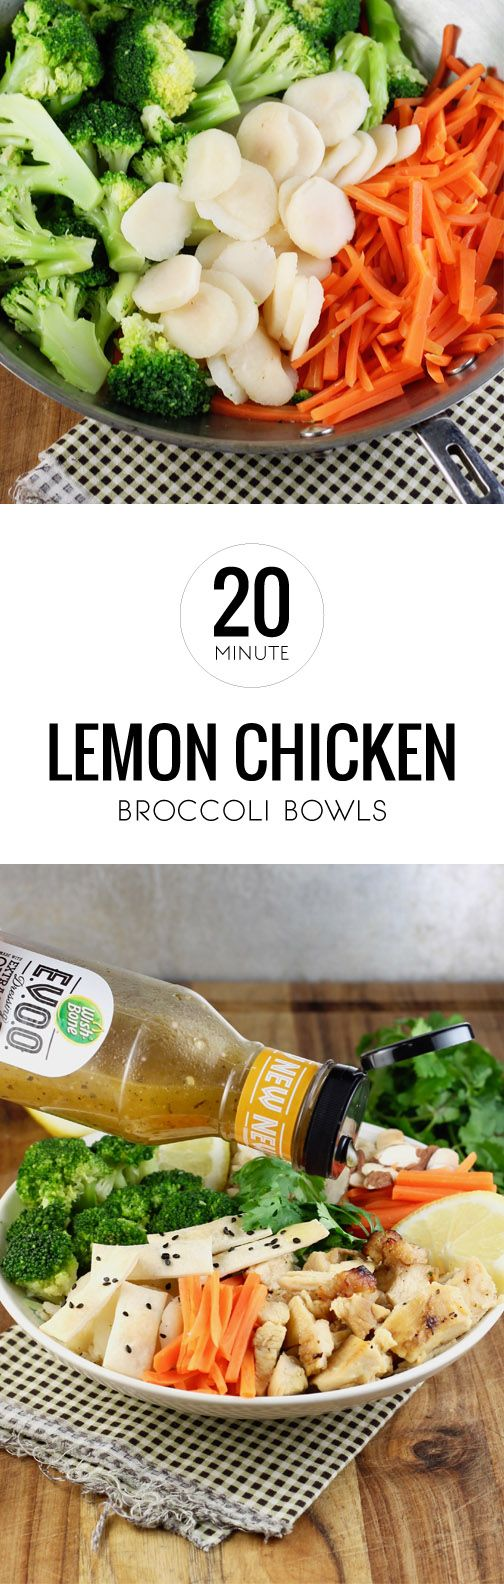 Bursting with flavor, this recipe for 20 Minute Lemon Chicken Broccoli Bowls makes it easy to serve fresh ingredients on your dinner table. Using steamed carrots, water chestnuts, almonds, Tyson Oven Roasted Diced Chicken Breasts, homemade tortilla strips—using TortillaLand Flour Tortillas, and Wish-Bone EVOO Lemon and Herb Dressing, everything about this dish will have your family smiling. You can find all the ingredients you need at Kroger!